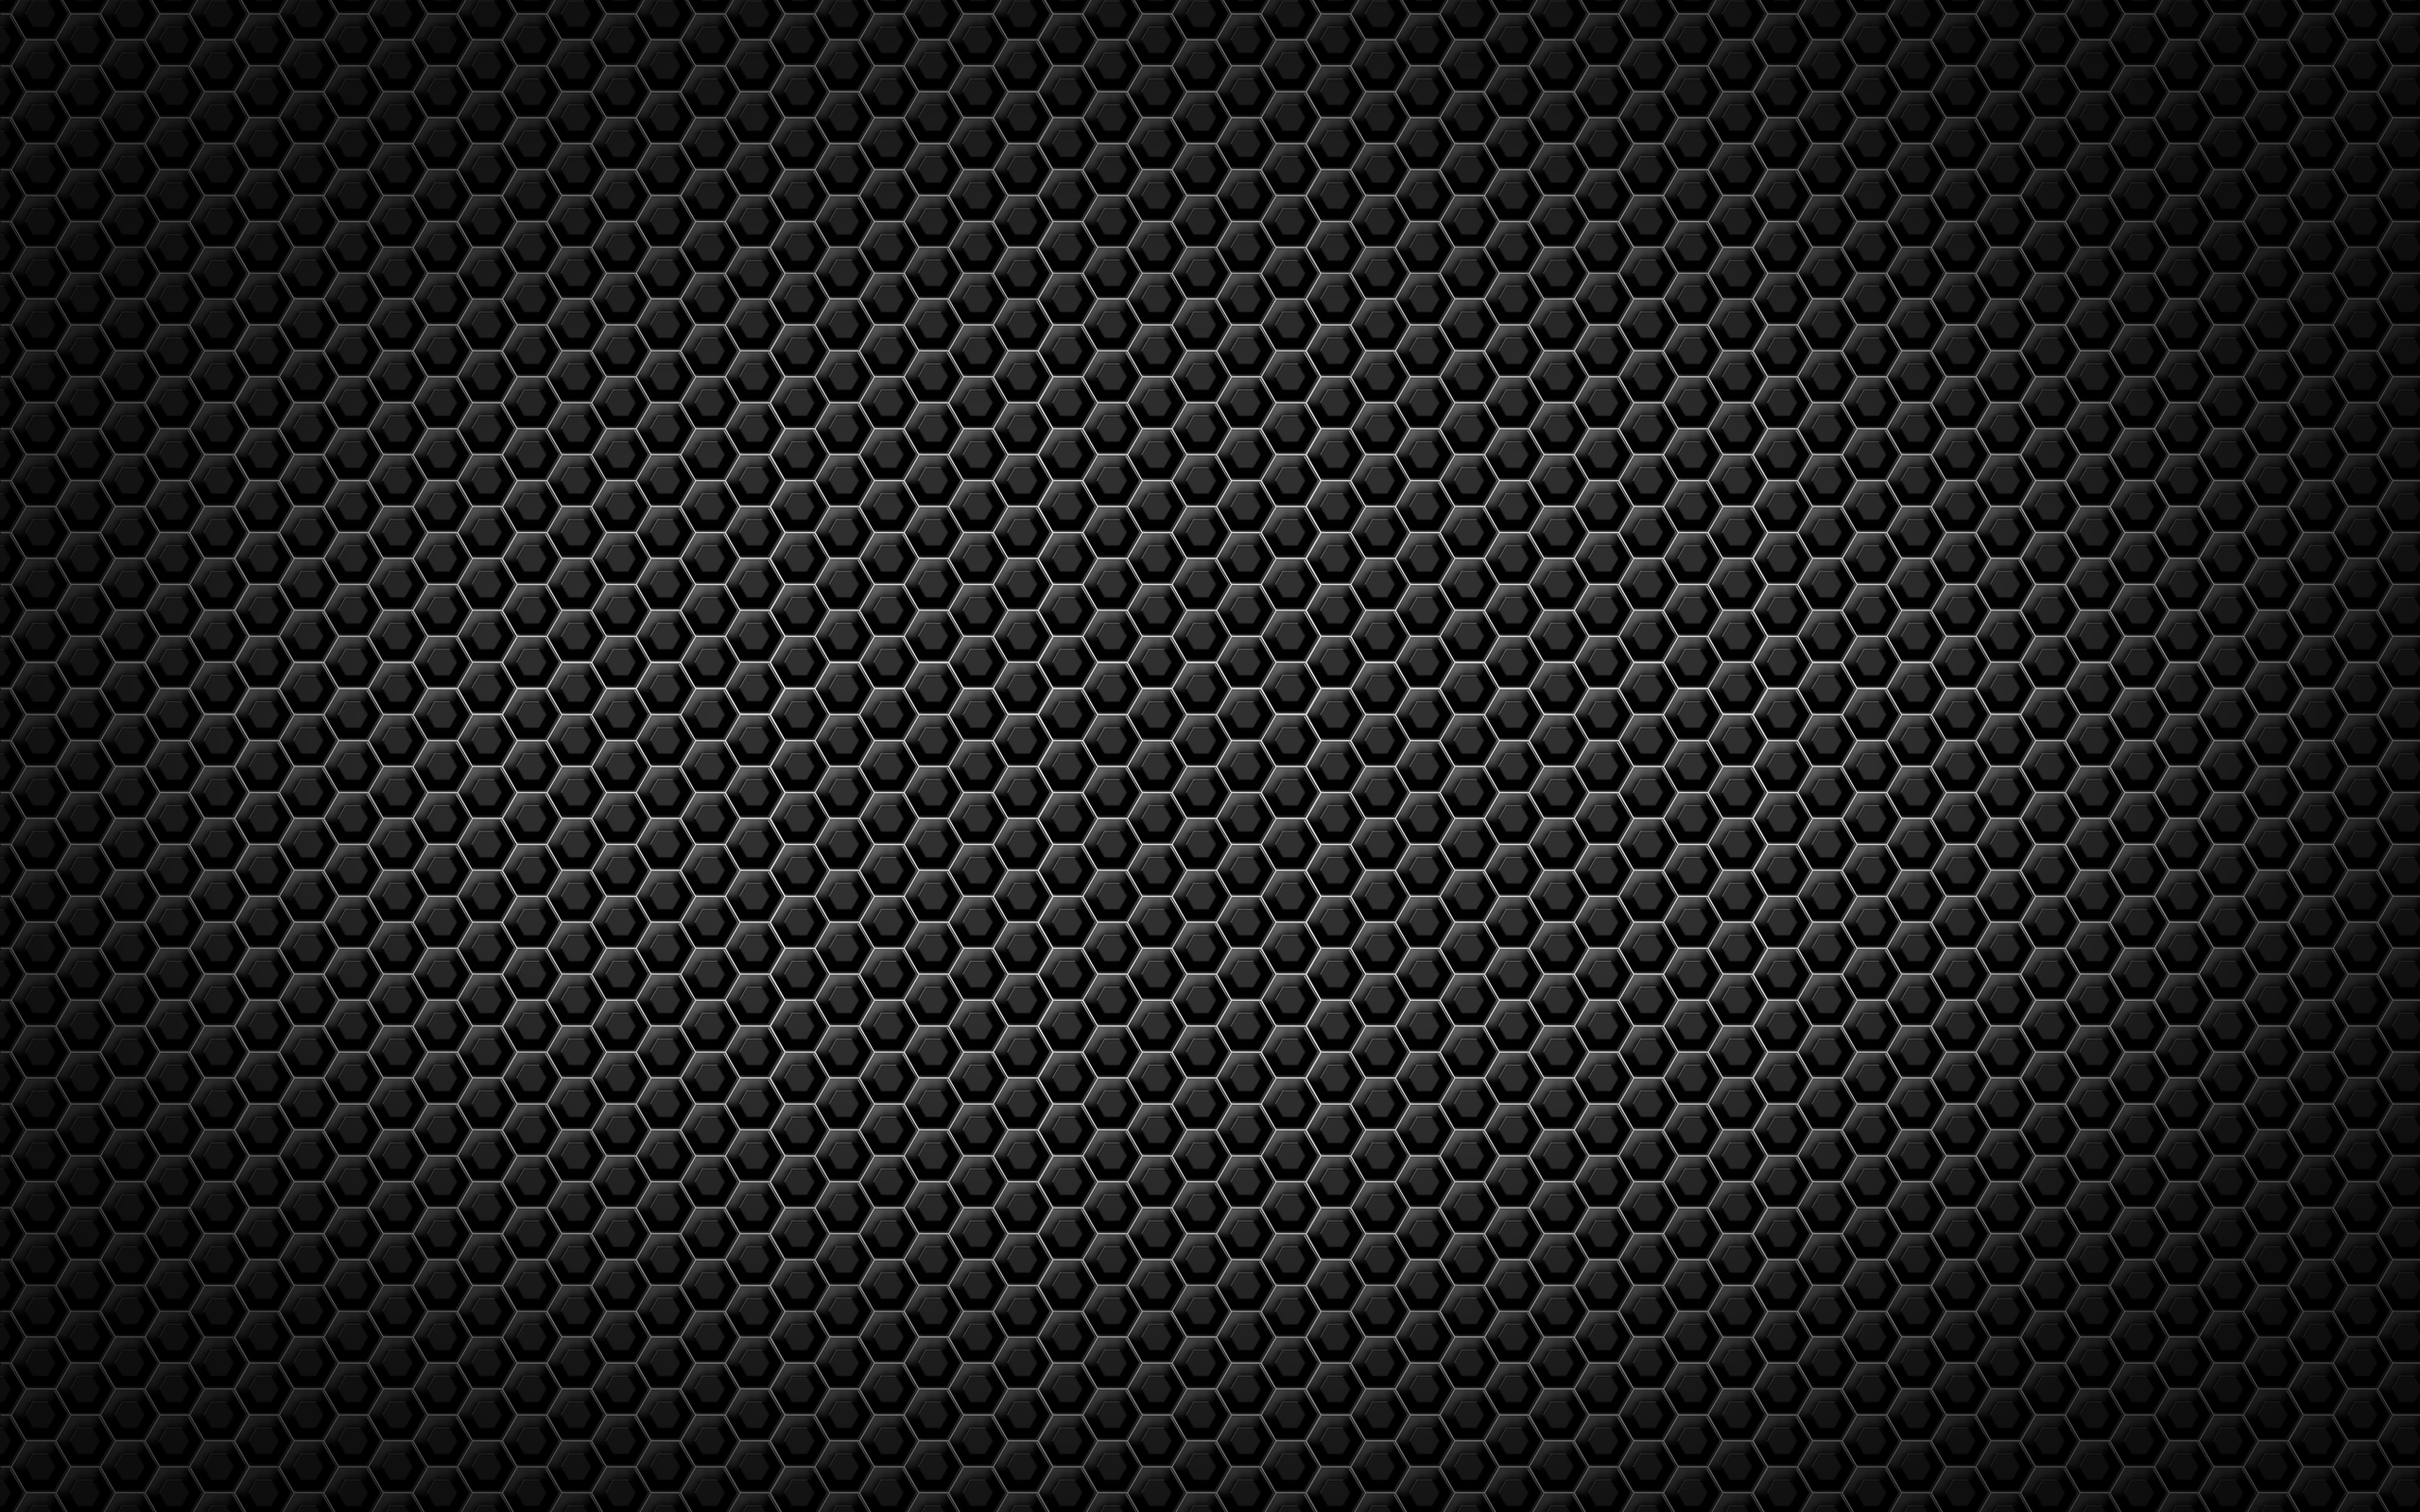 Black Wallpapers Black is beautiful and so are black wallpapers 2560x1600